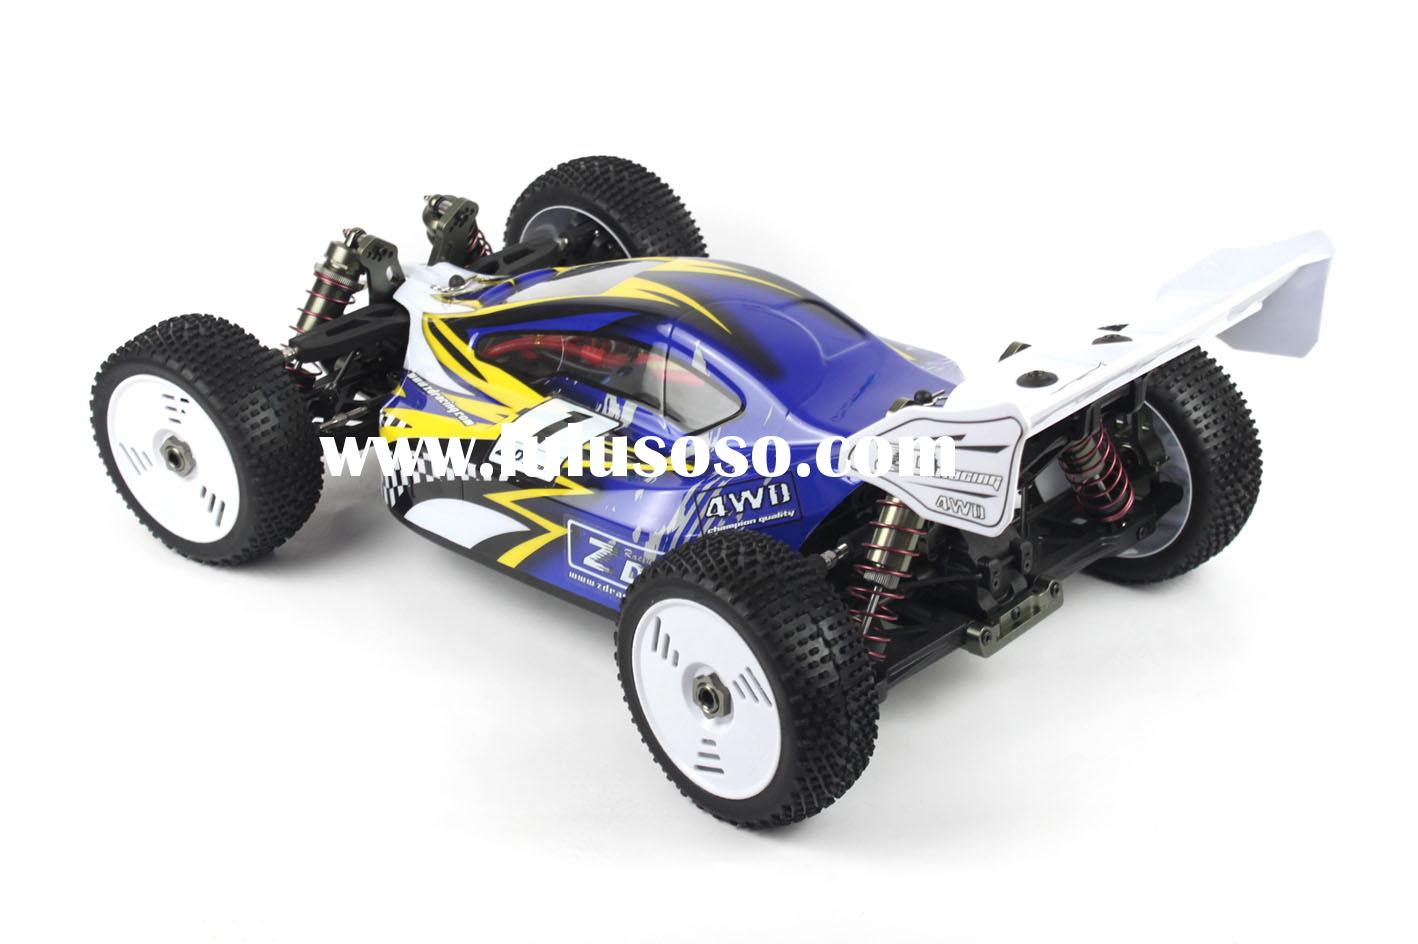 NEW RADIO REMOTE CONTROL 1:8 SCALE CAR BRUSHLESS ELECTRIC BUGGY RTR 4WD RC CAR